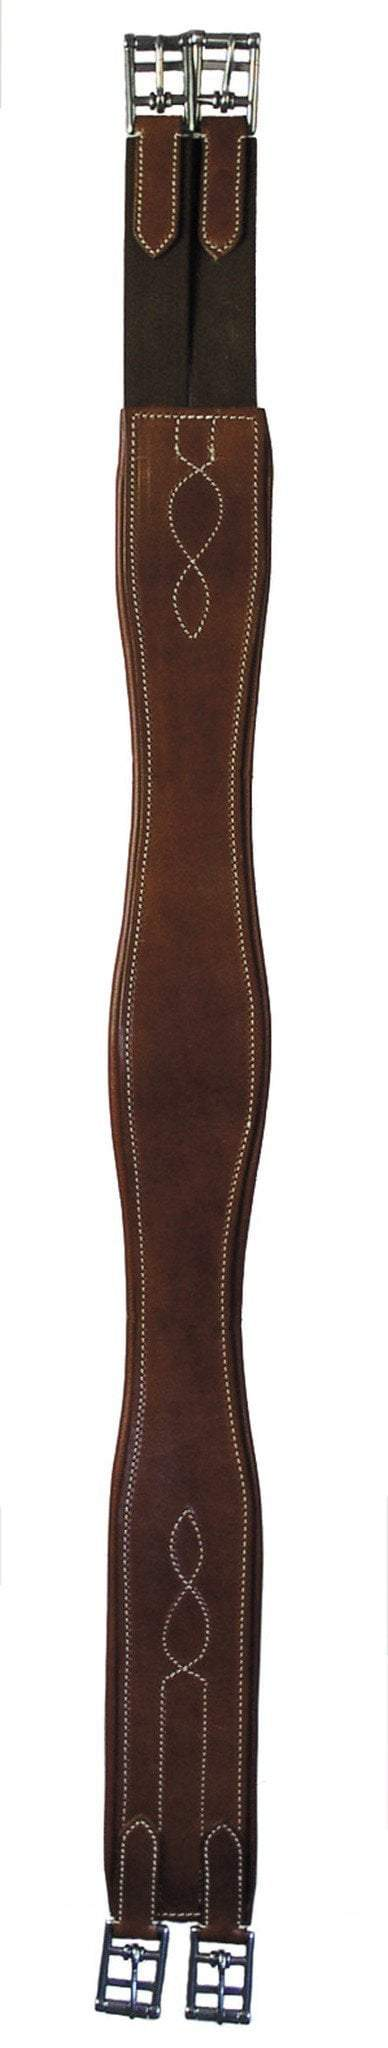 Elite Overlay Leather Girth, Girth/Cinch - Warmblood Tack Store